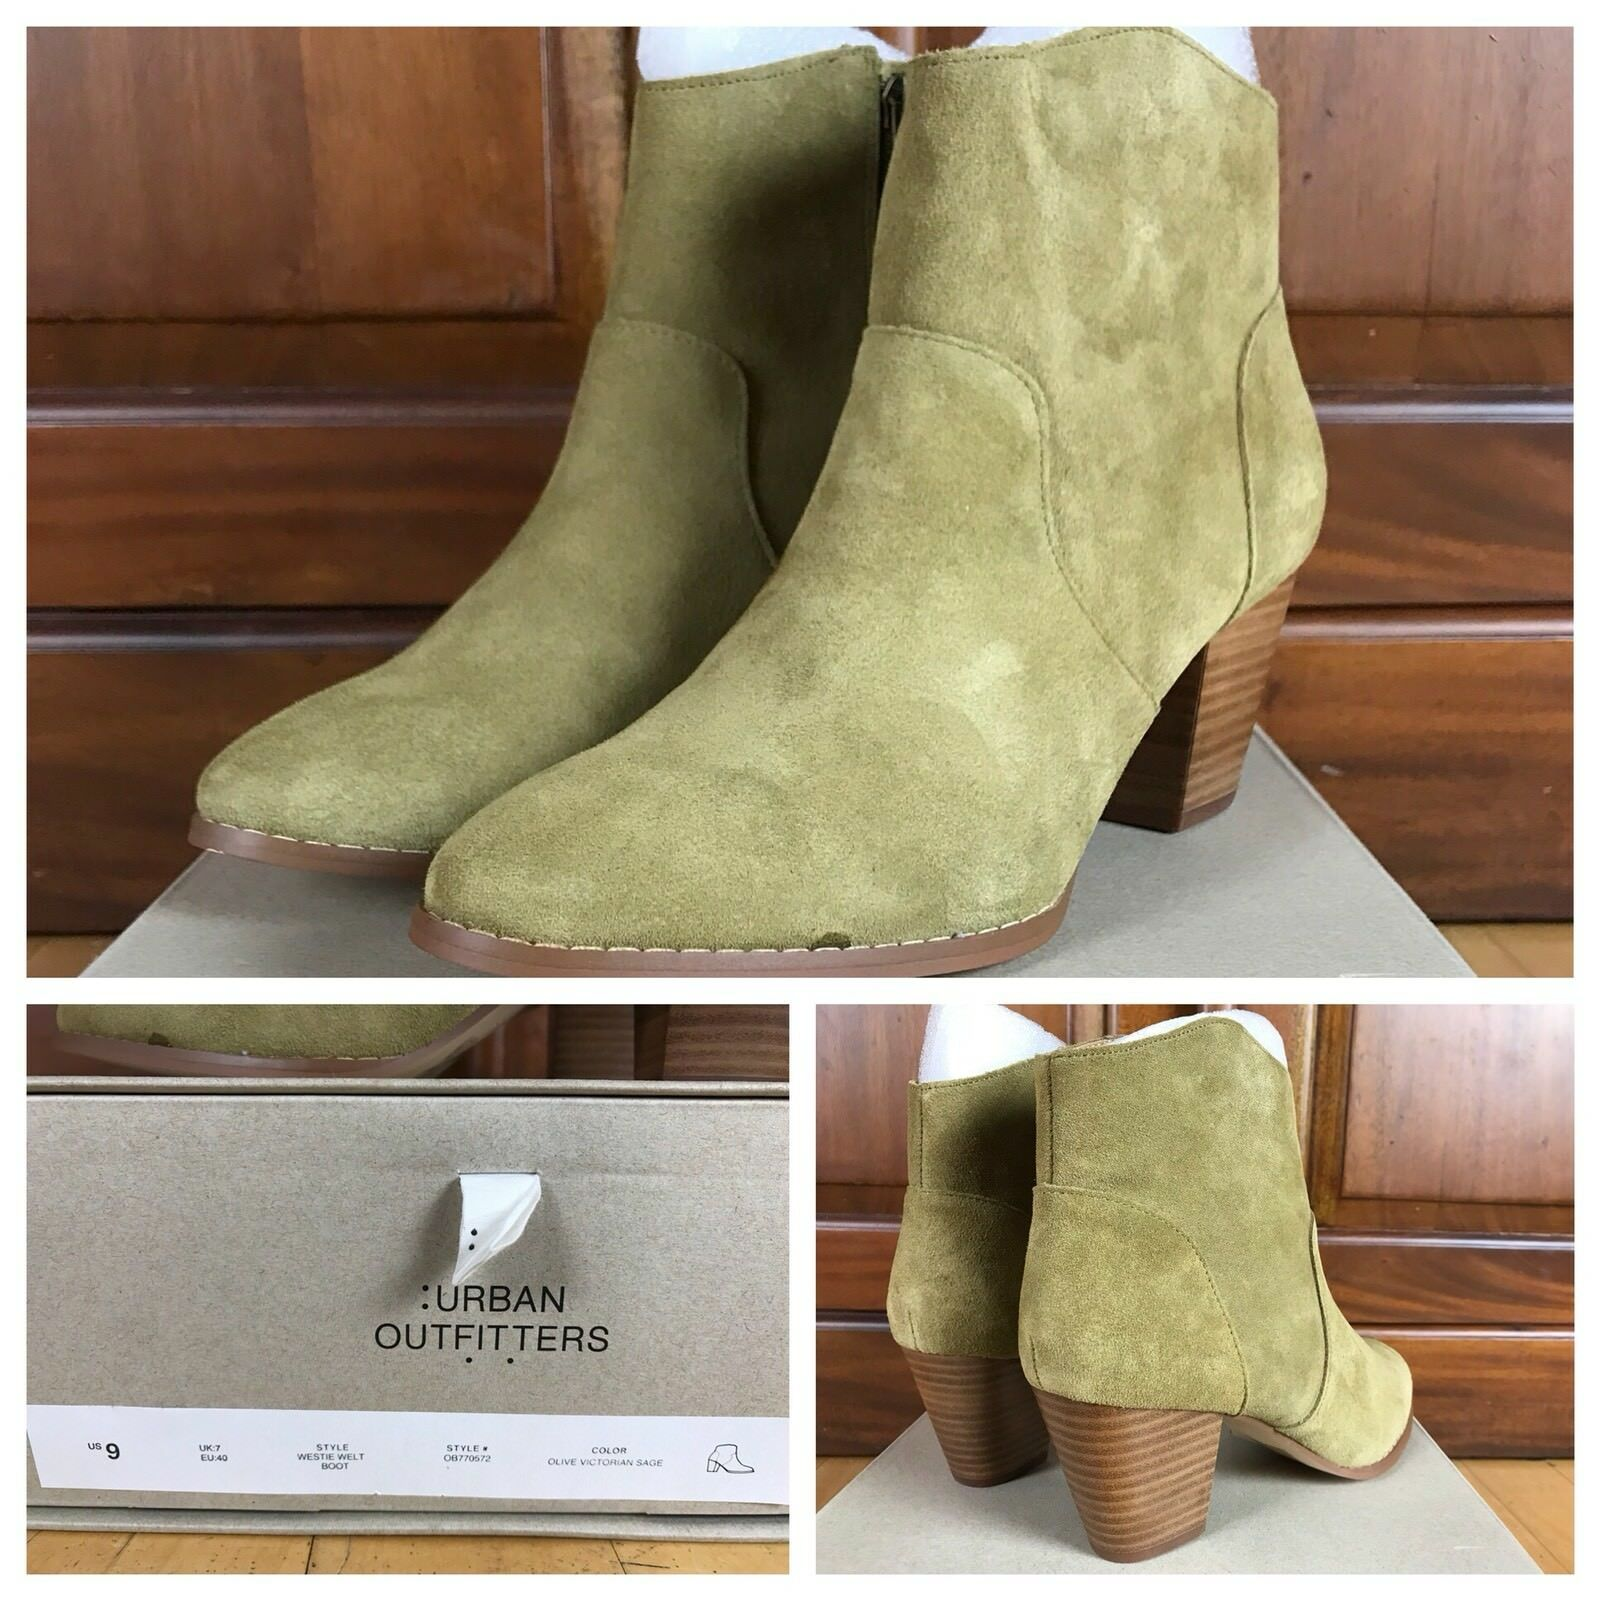 Urban Outfitters Westie Welt Sage Green Suede Zippered Heel Ankle Boots SZ 9